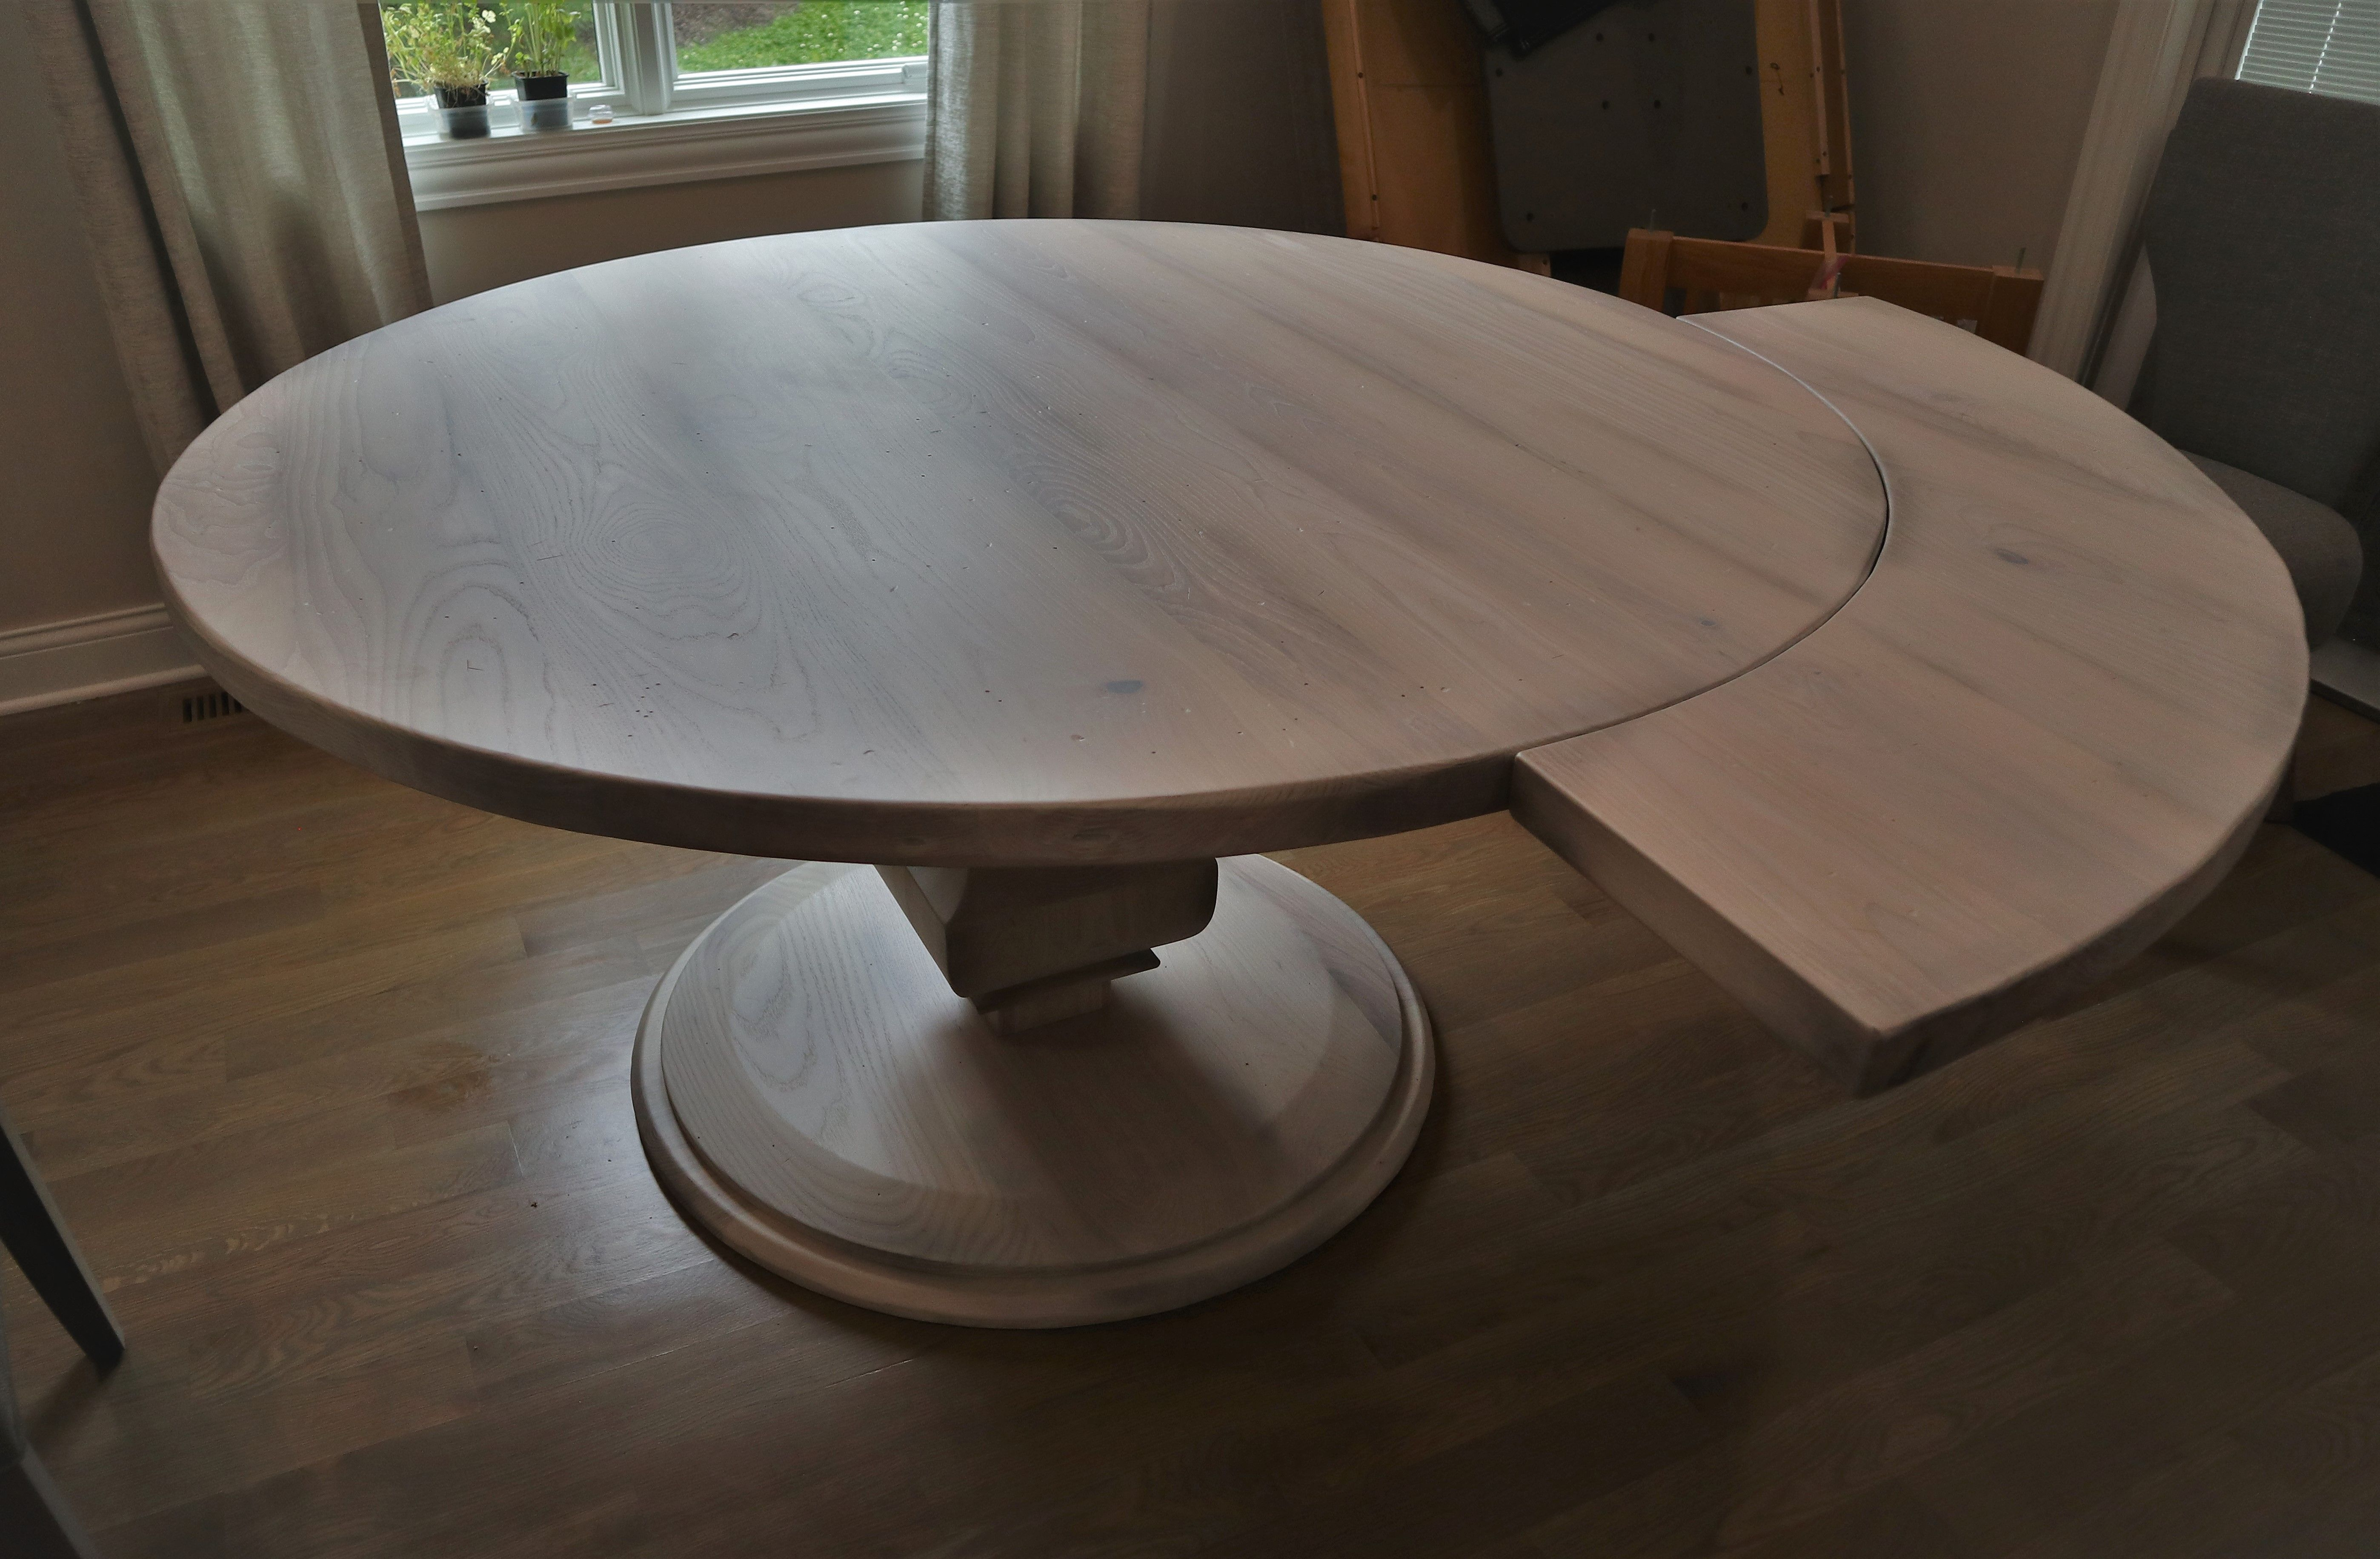 One Way To Keep A Round Table Round While Adding Additional Length Is To Go With Perimeter Leaves Only One Attache Circular Dining Table Stained Table Table